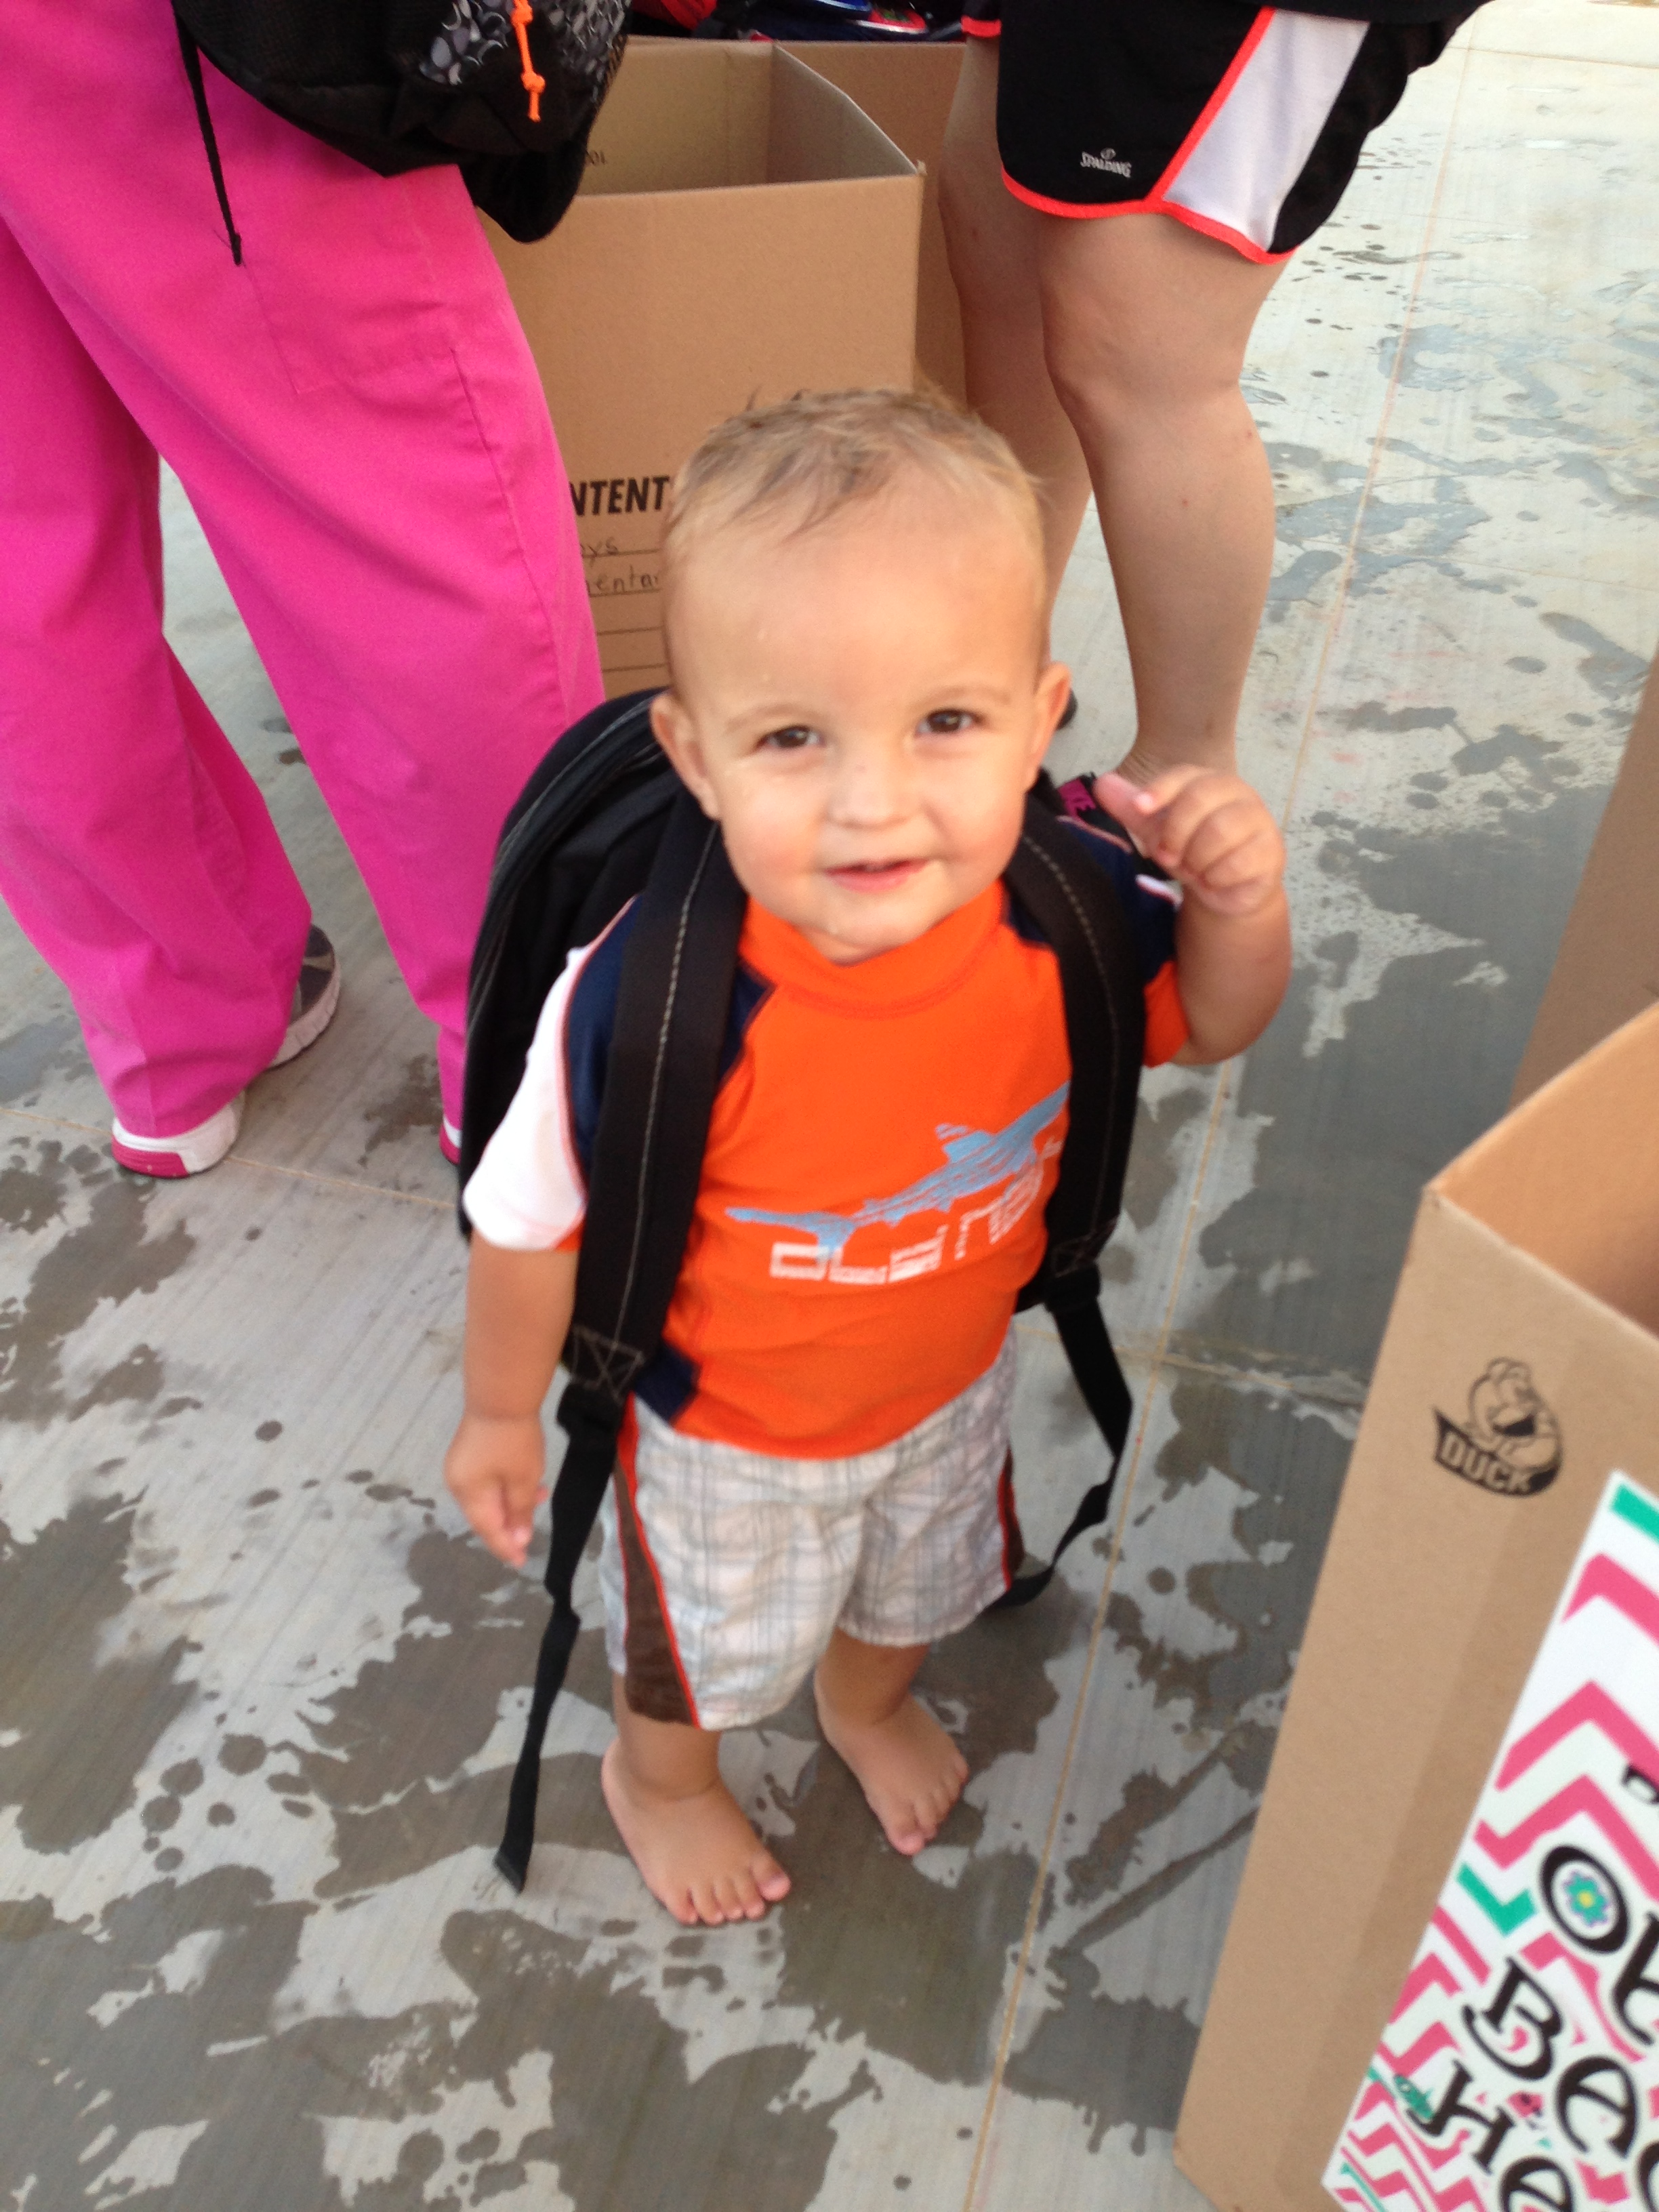 This little guy is wearing one of Kamrie's backpacks... so cute!